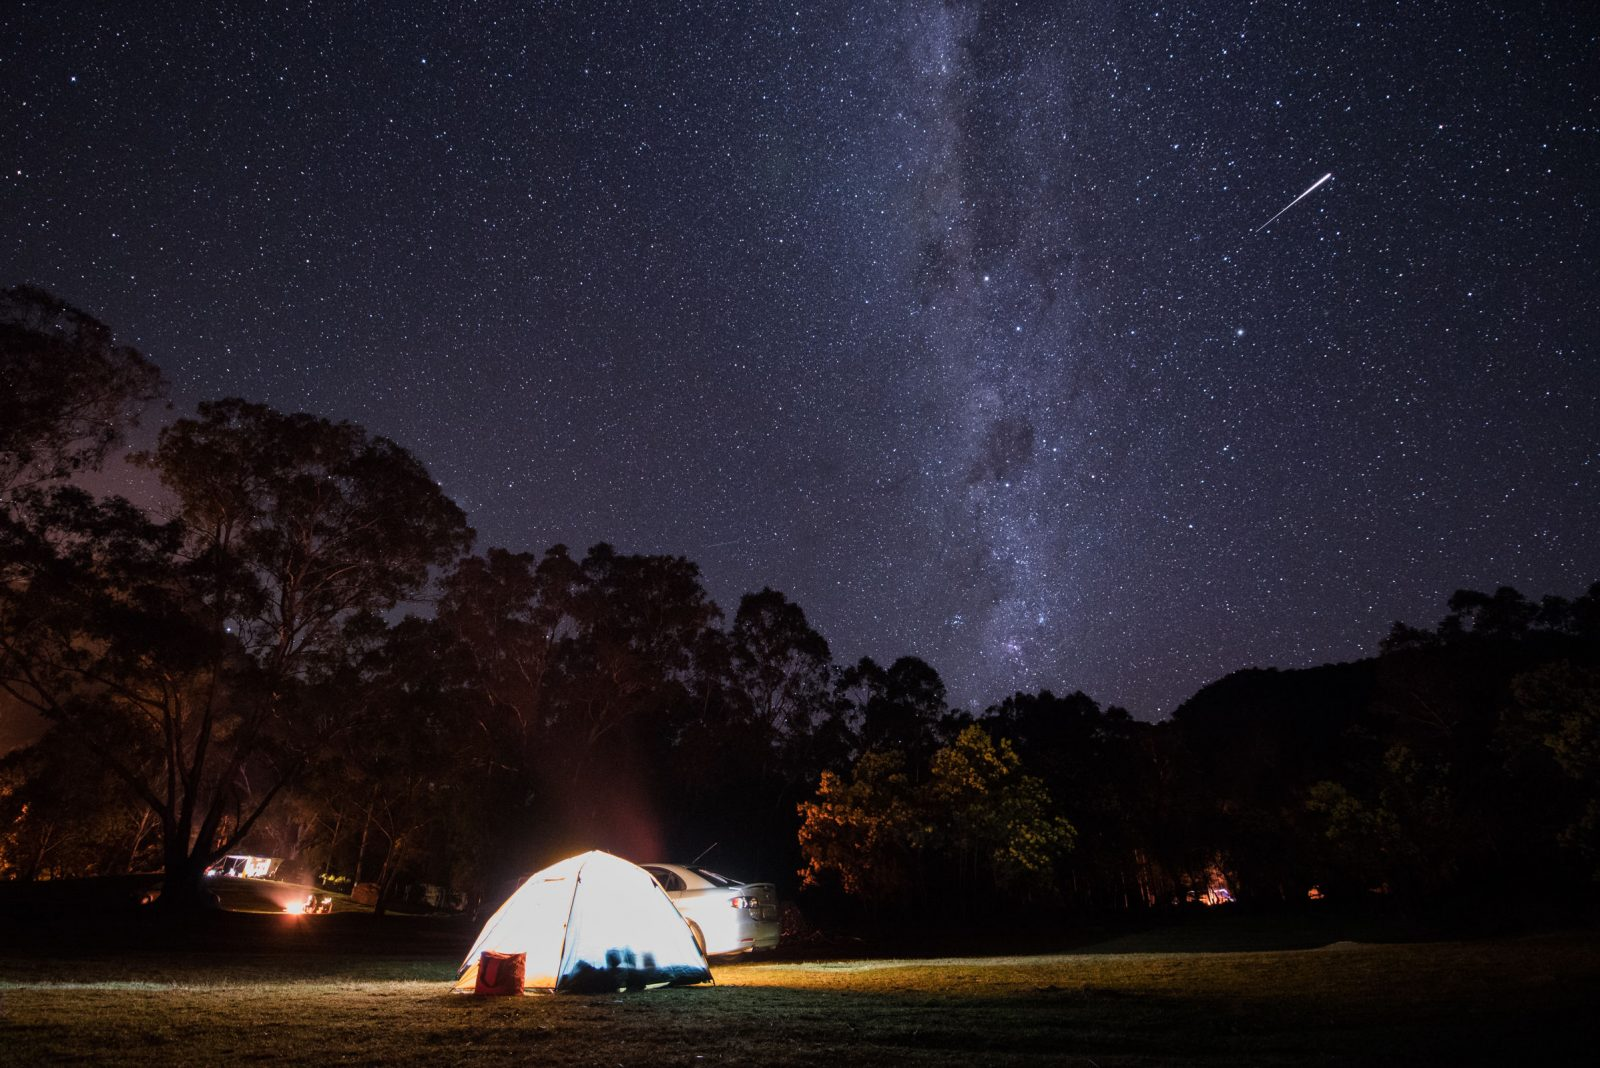 Campground at night under the stars in a NSW national park. Photo: Adrian Mascenon